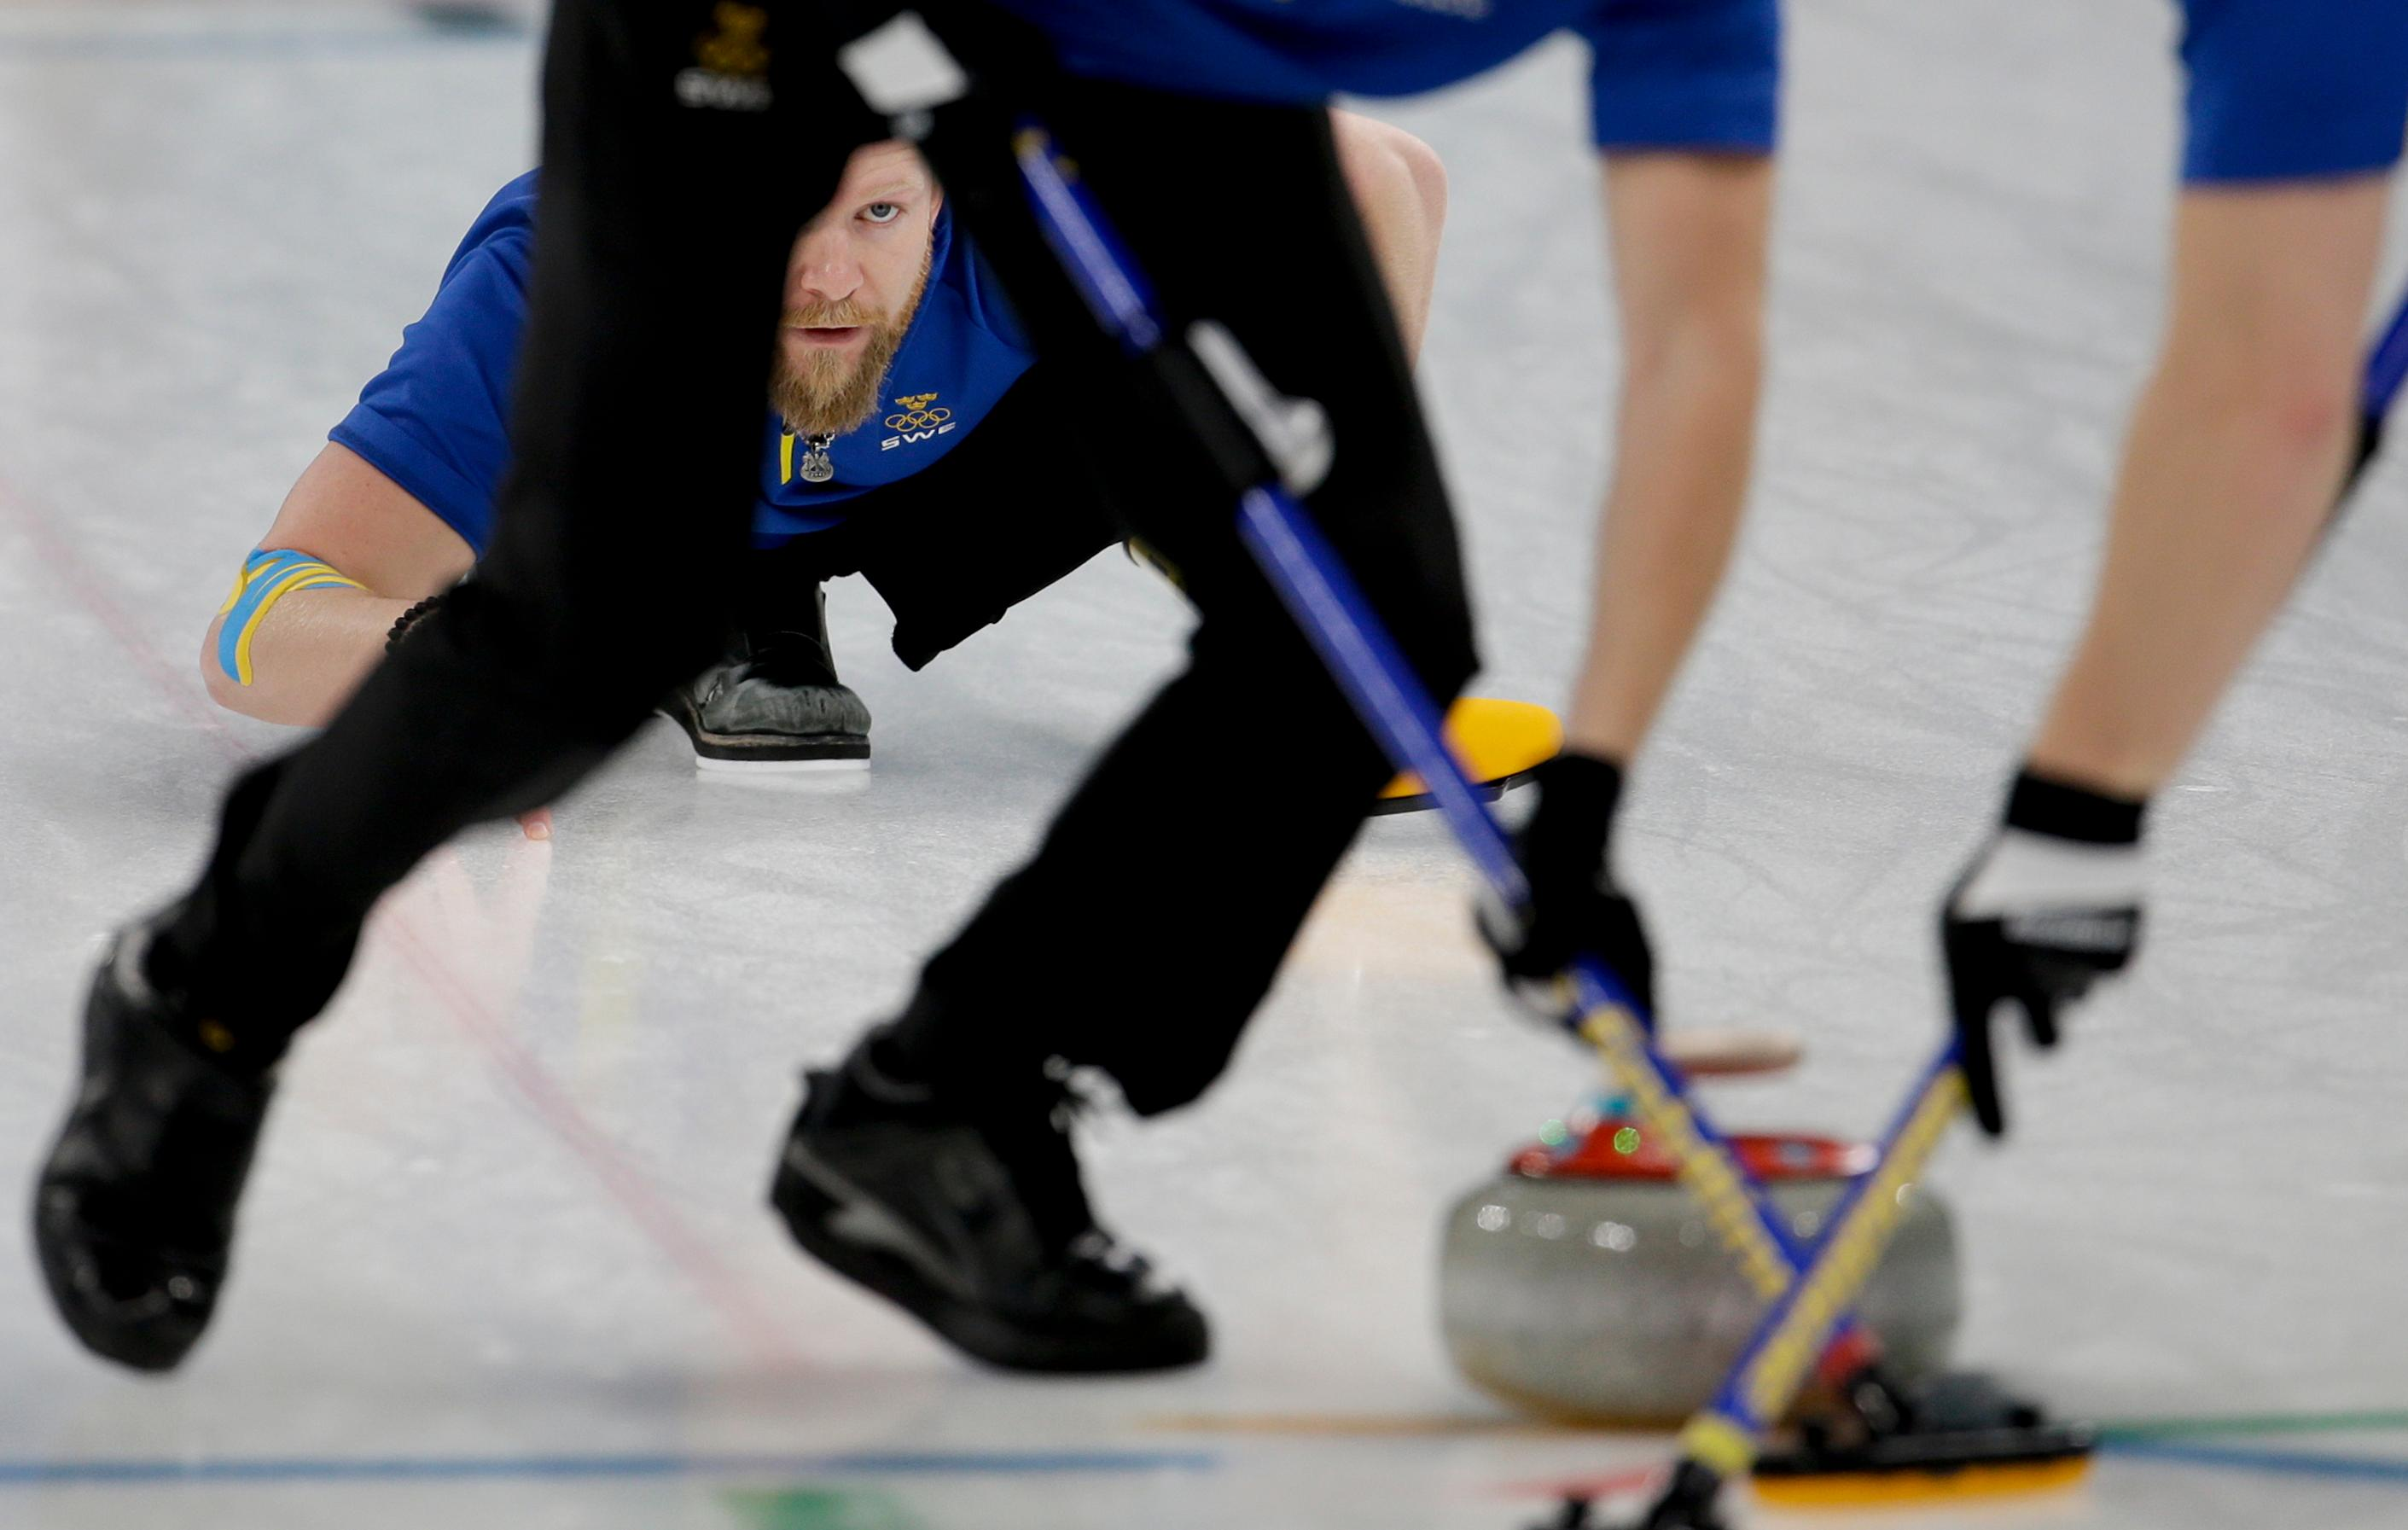 Sweden's skip Niklas Edin watches his teammates sweep the ice during the men's final curling match against THE United States at the 2018 Winter Olympics in Gangneung, South Korea, Saturday, Feb. 24, 2018. (AP Photo/Natacha Pisarenko)